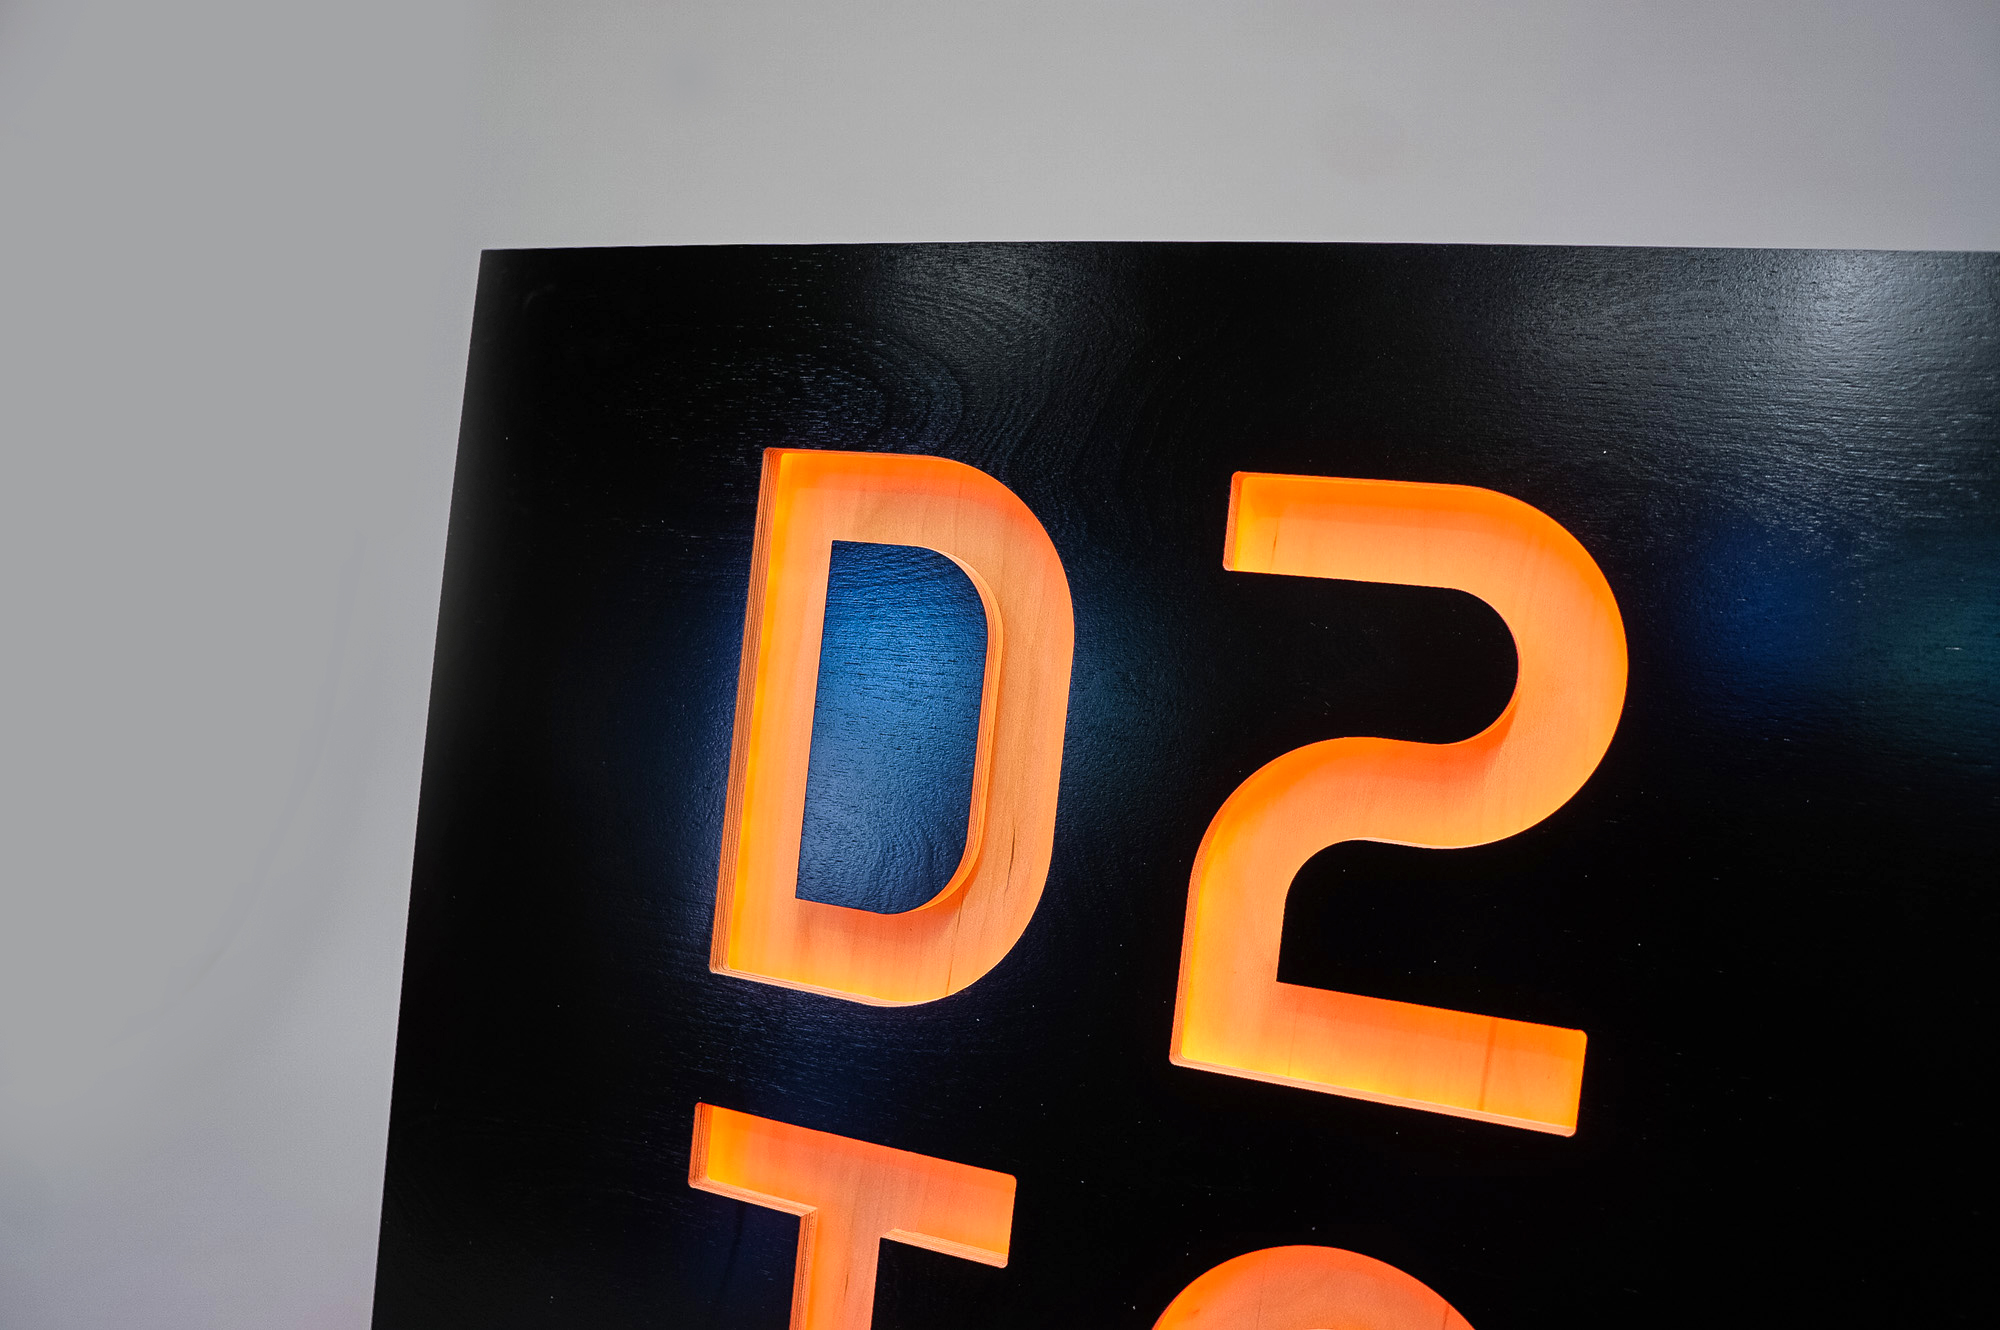 Illuminated, black painted, color changing sign for D2IQ (formerly Mesophere), an American technology company based in San Francisco, CA which develops software for data centers based on Apache Mesos.